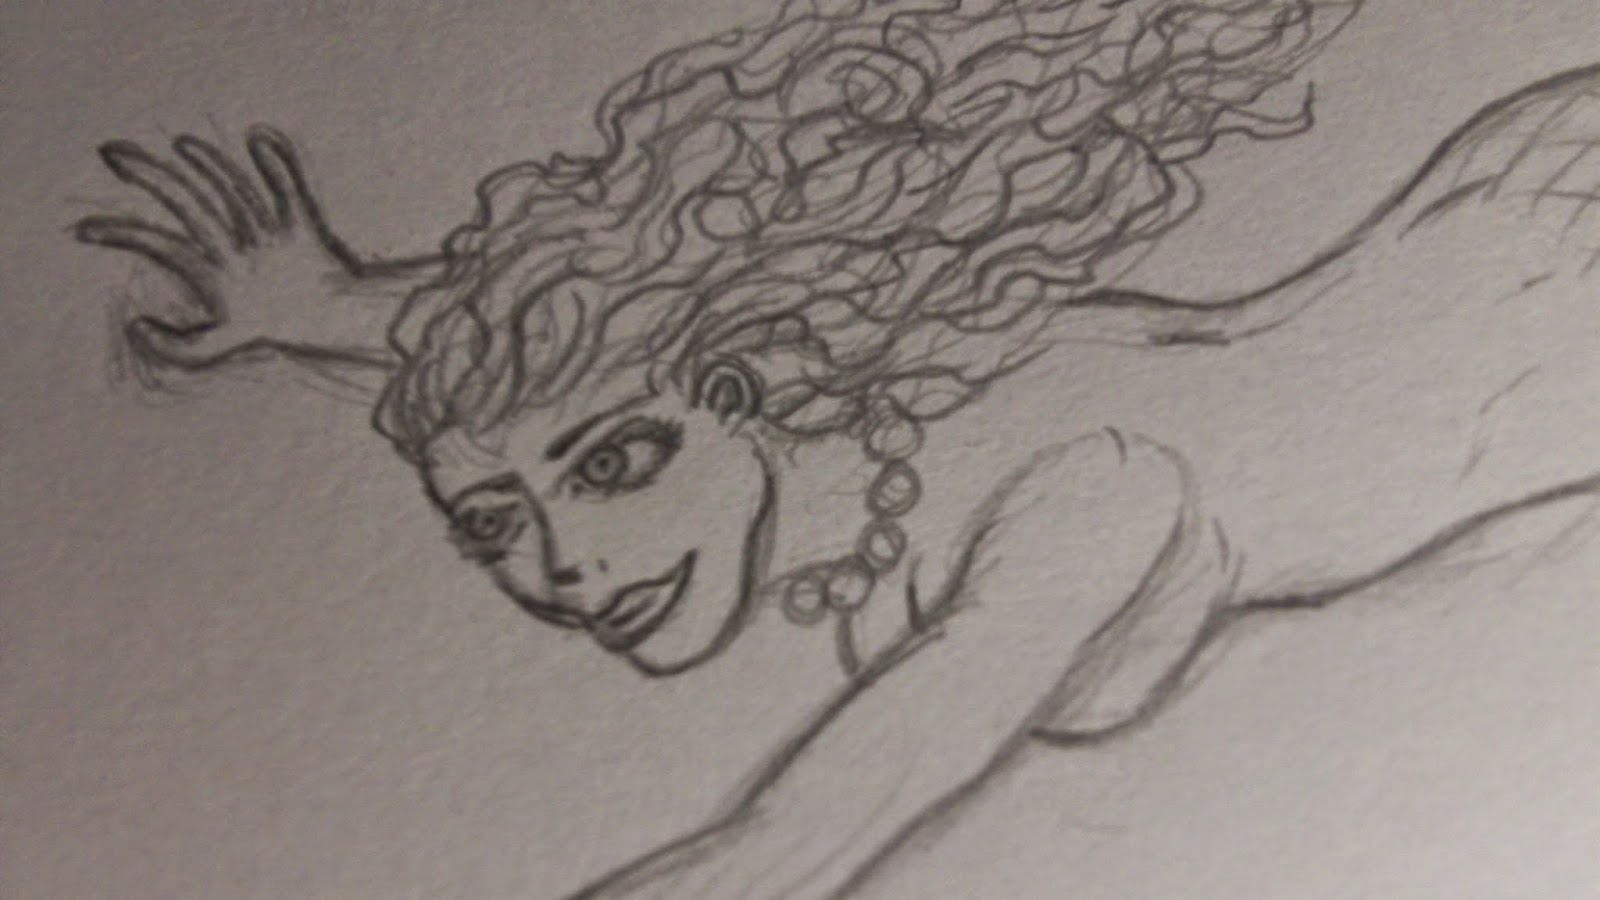 mermaid draft sketch